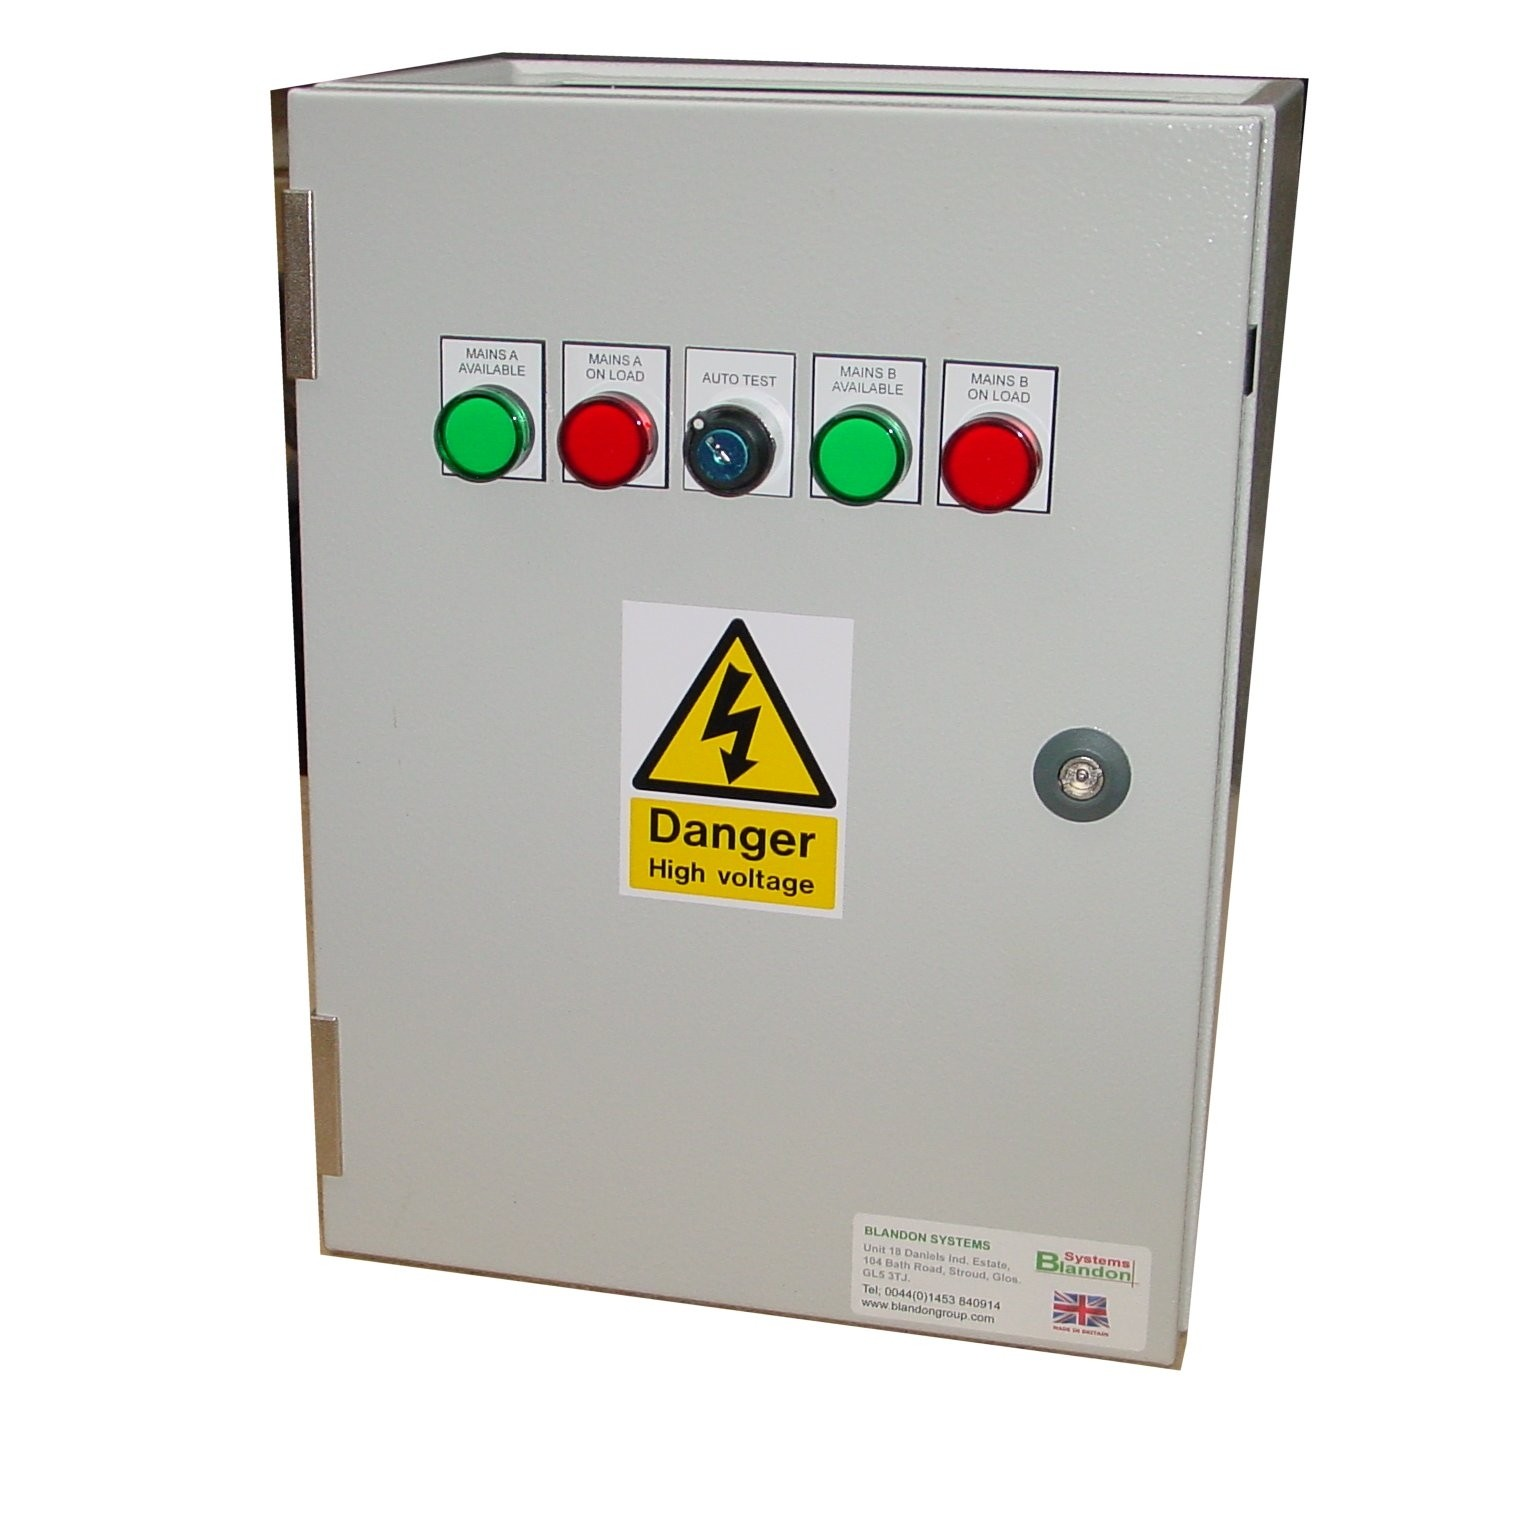 125A ATS 3 Phase Mains-Mains 400V, UVR Controlled, ICG Contactors